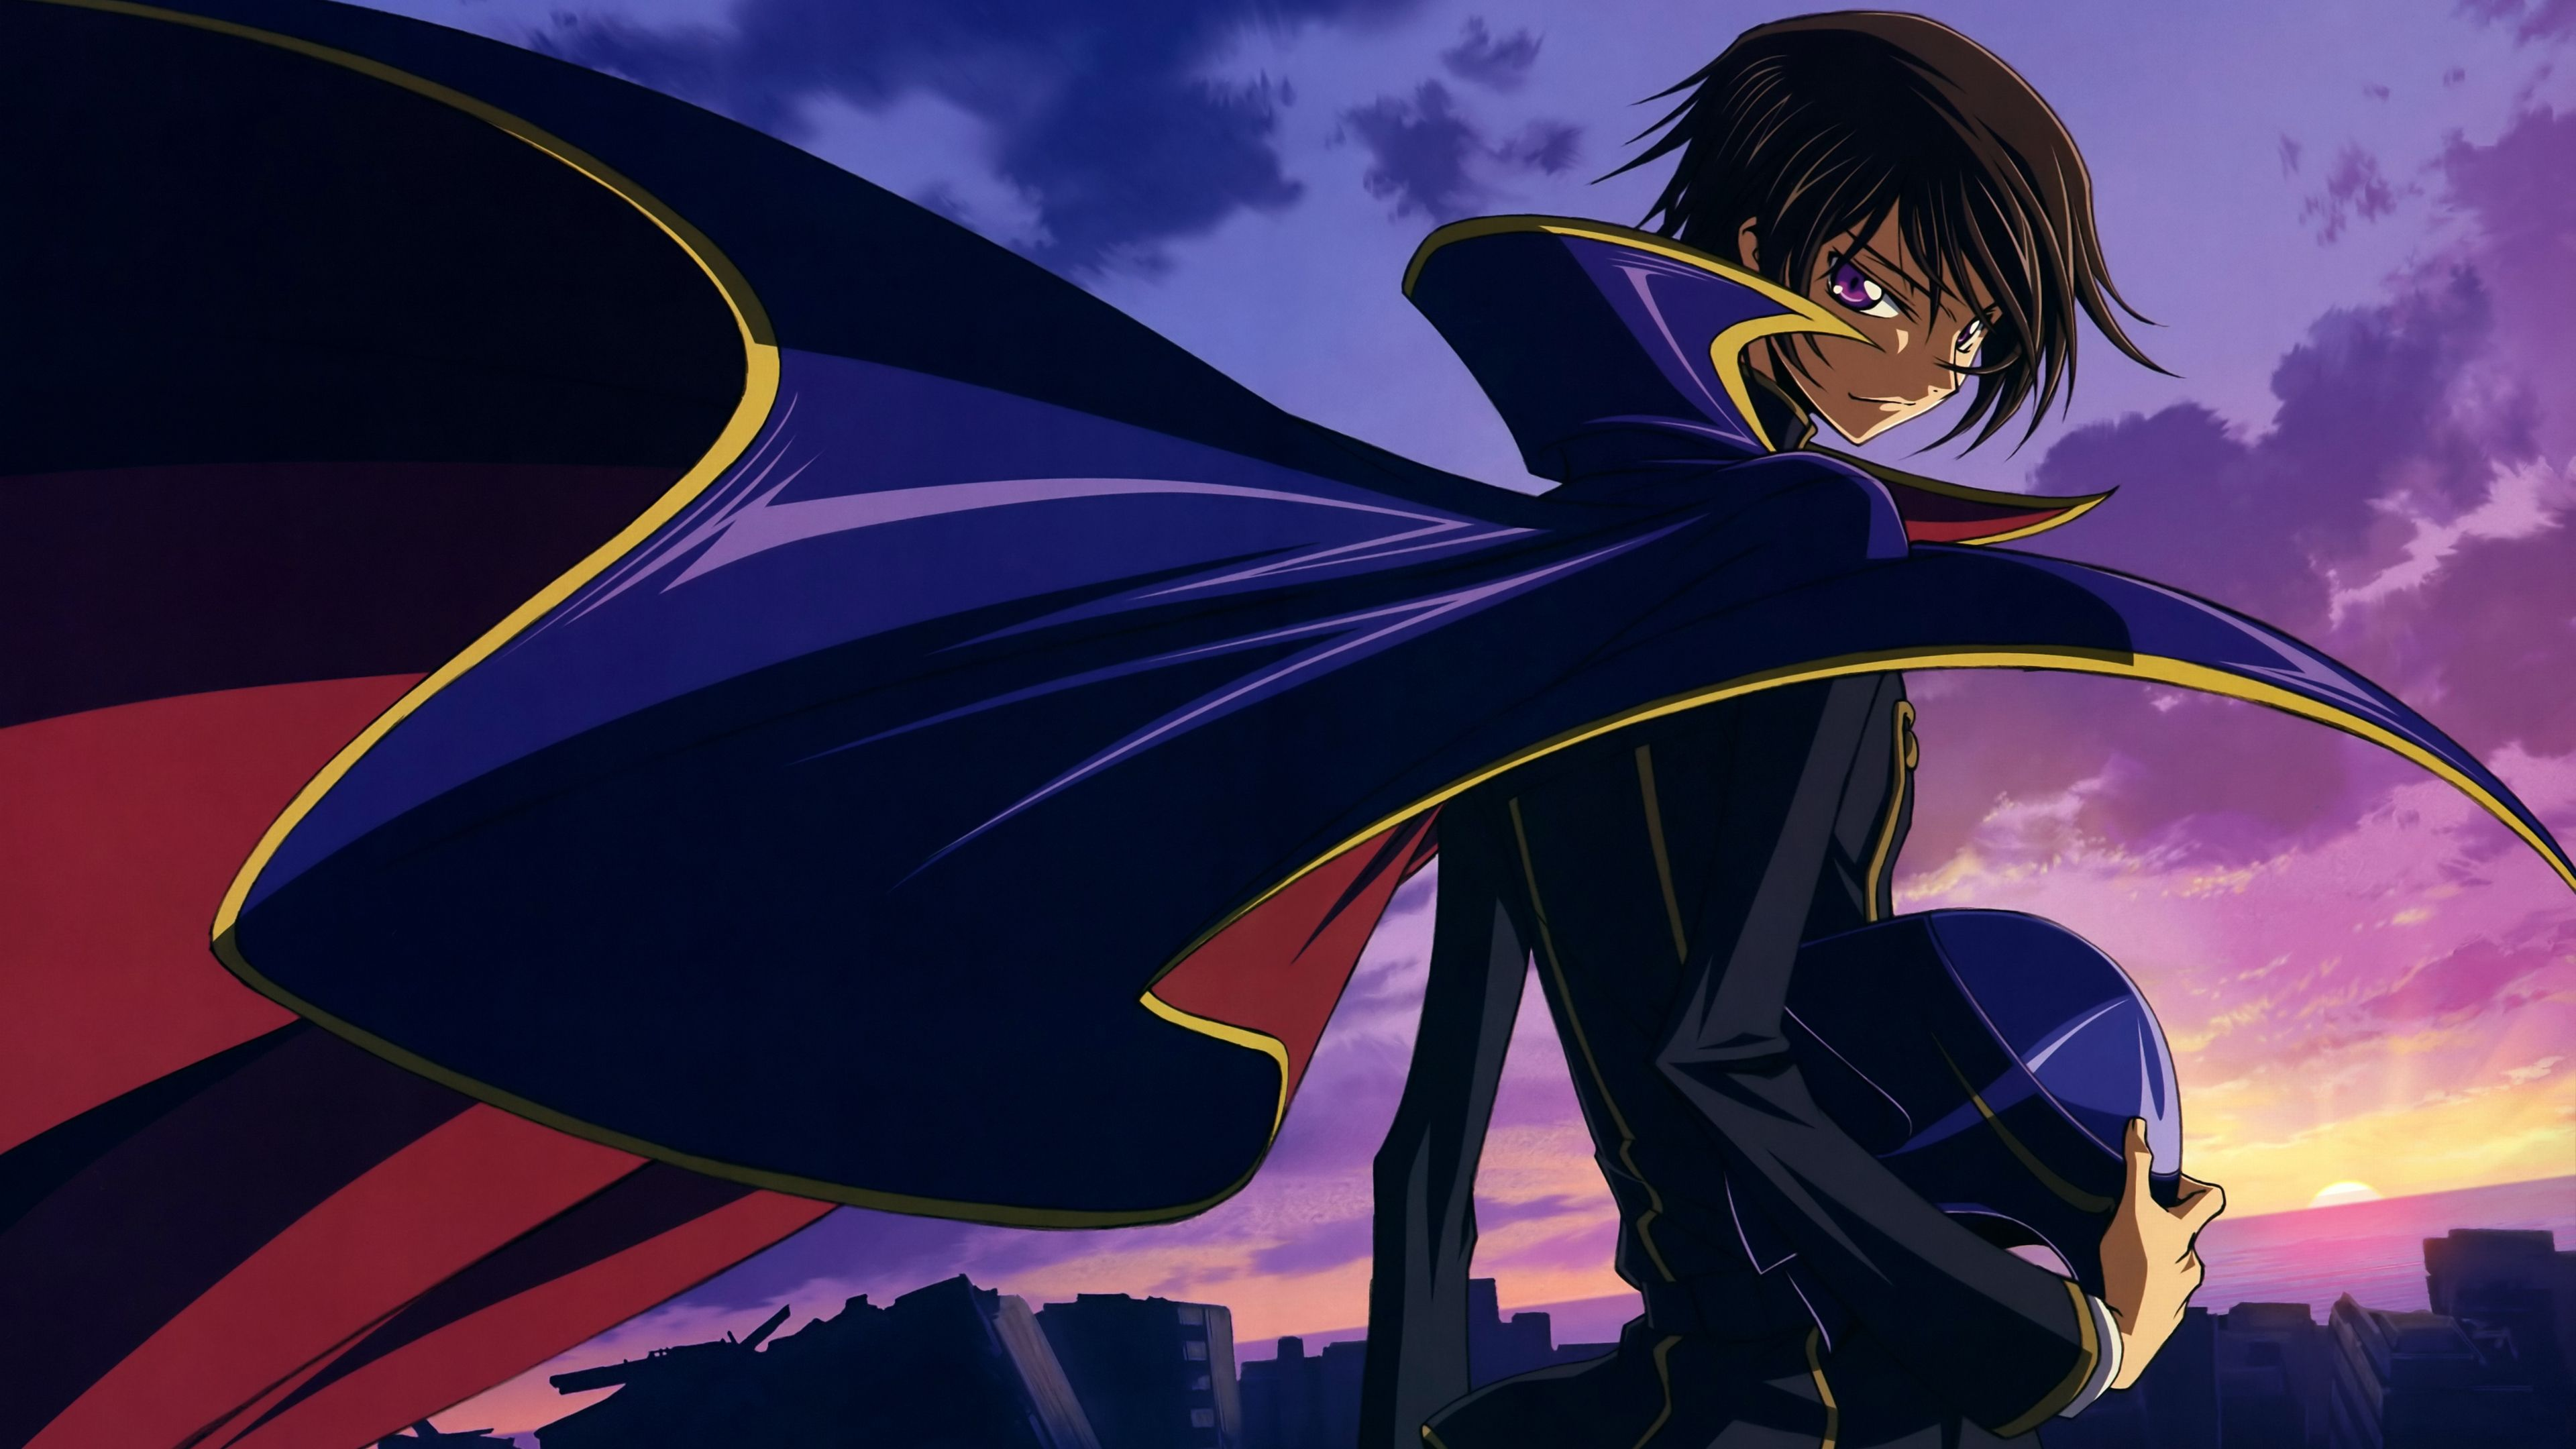 Lelouch Lamperouge (aka Zero)from Code Geass HD Wallpaper From Gallsource.com | Anime wallpaper ...